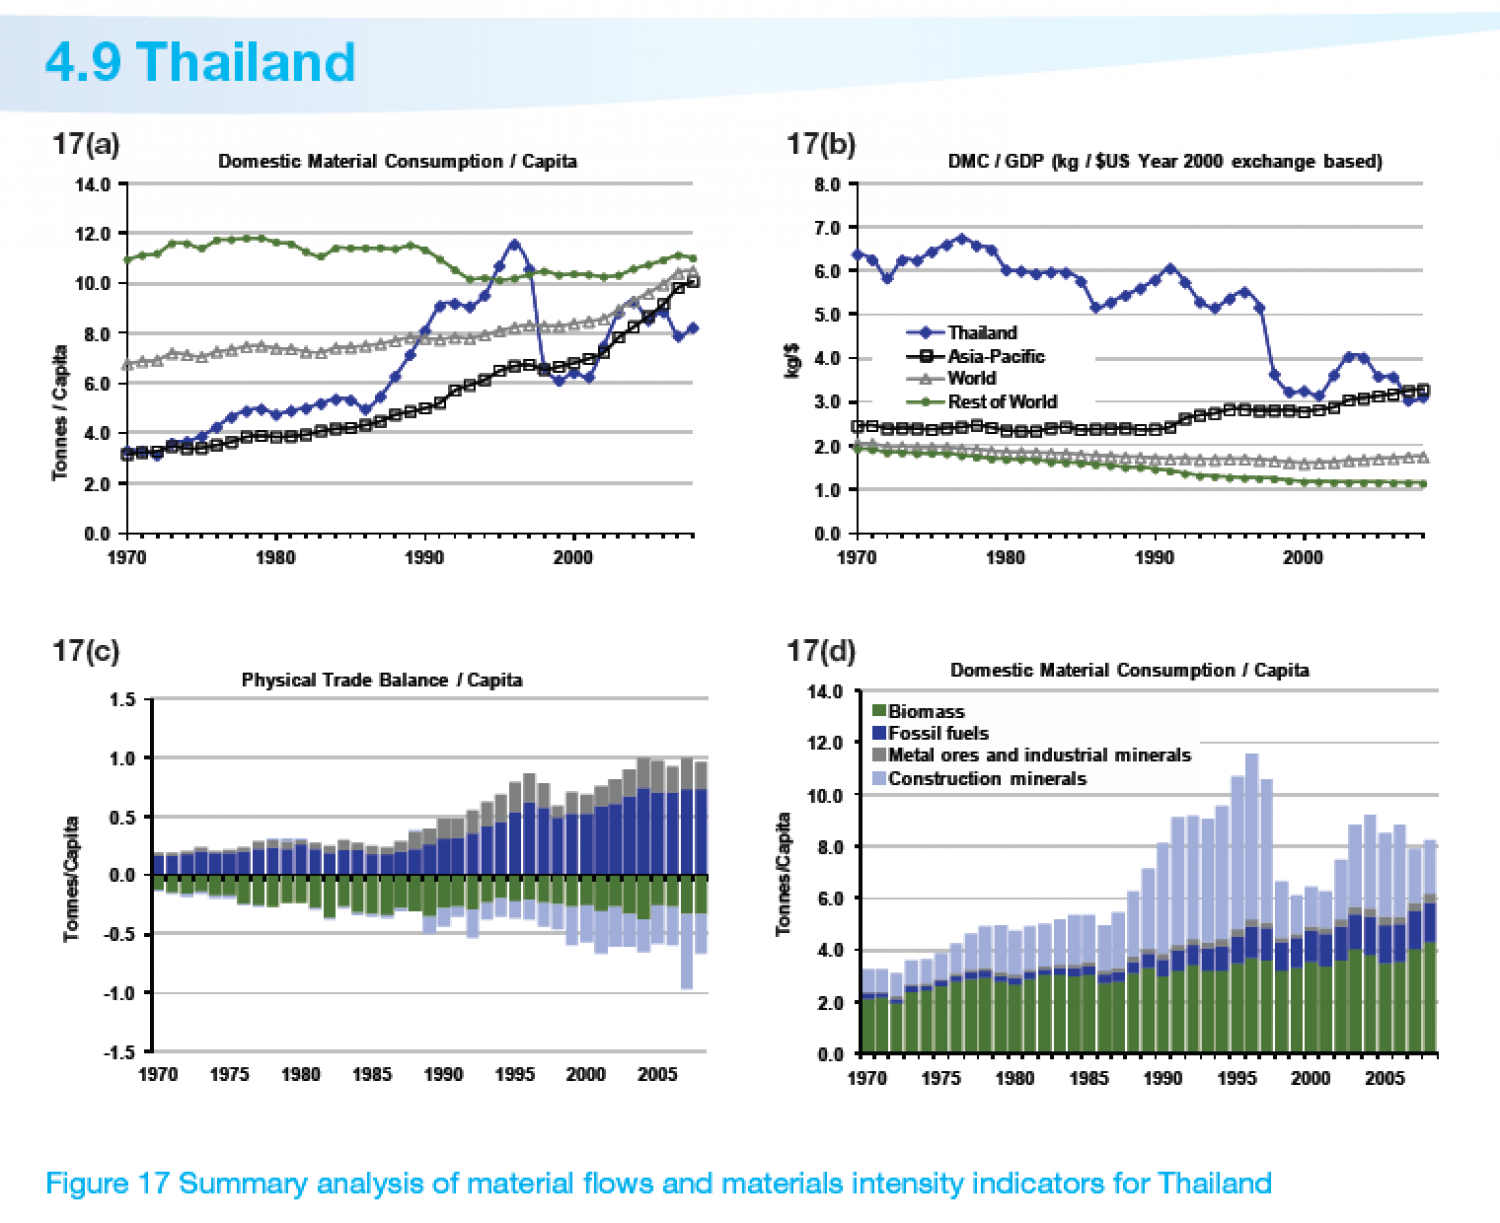 THAILAND : Summary analysis of material flows and materials intensity indicators Infographic